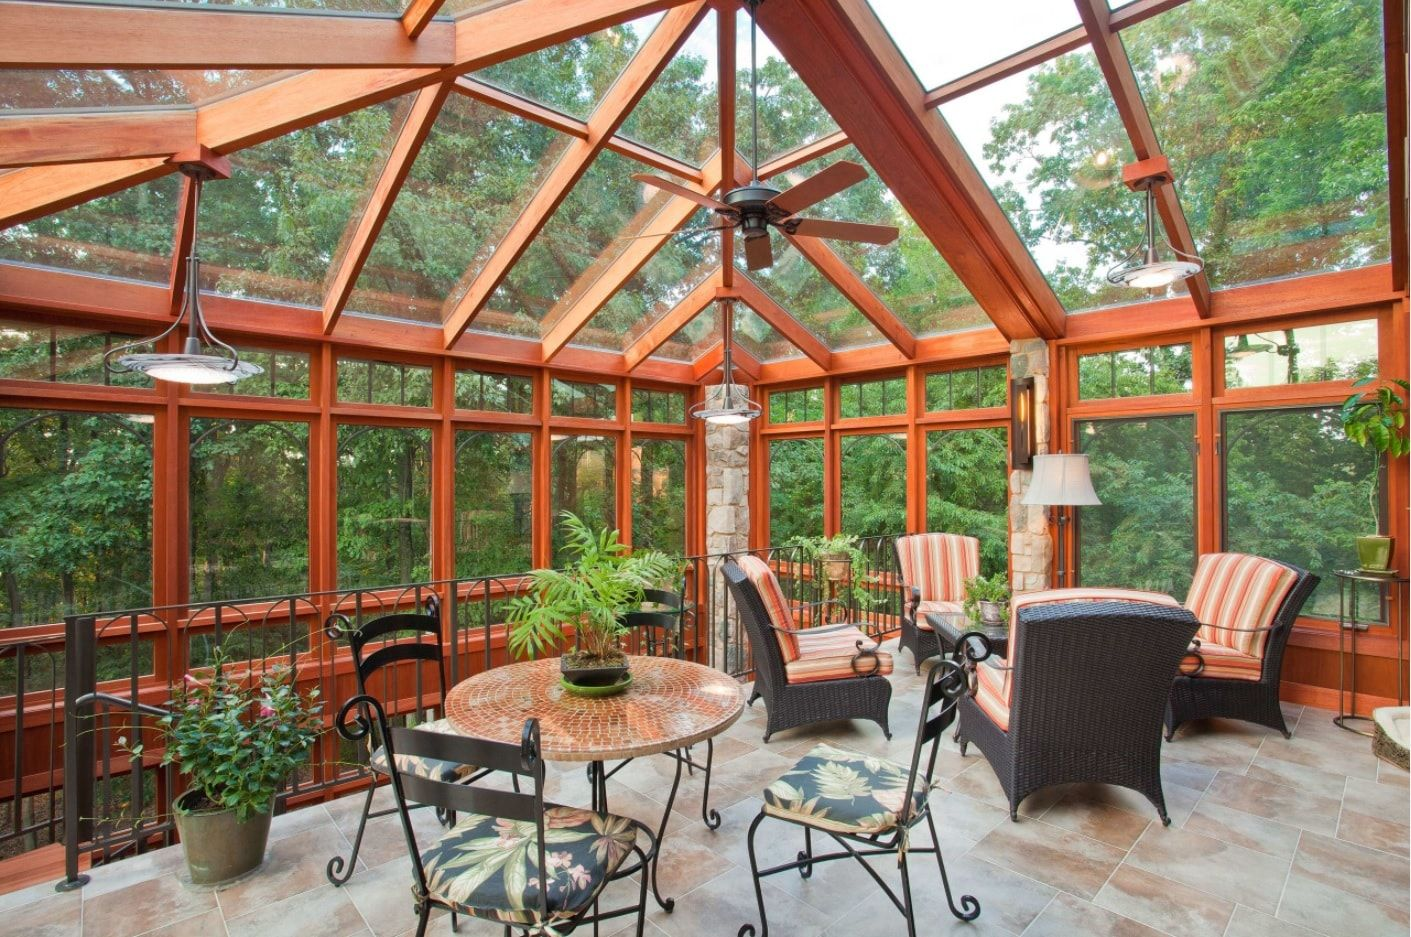 Unique wooden frame for the transparent walls and roof of the patio sunroom